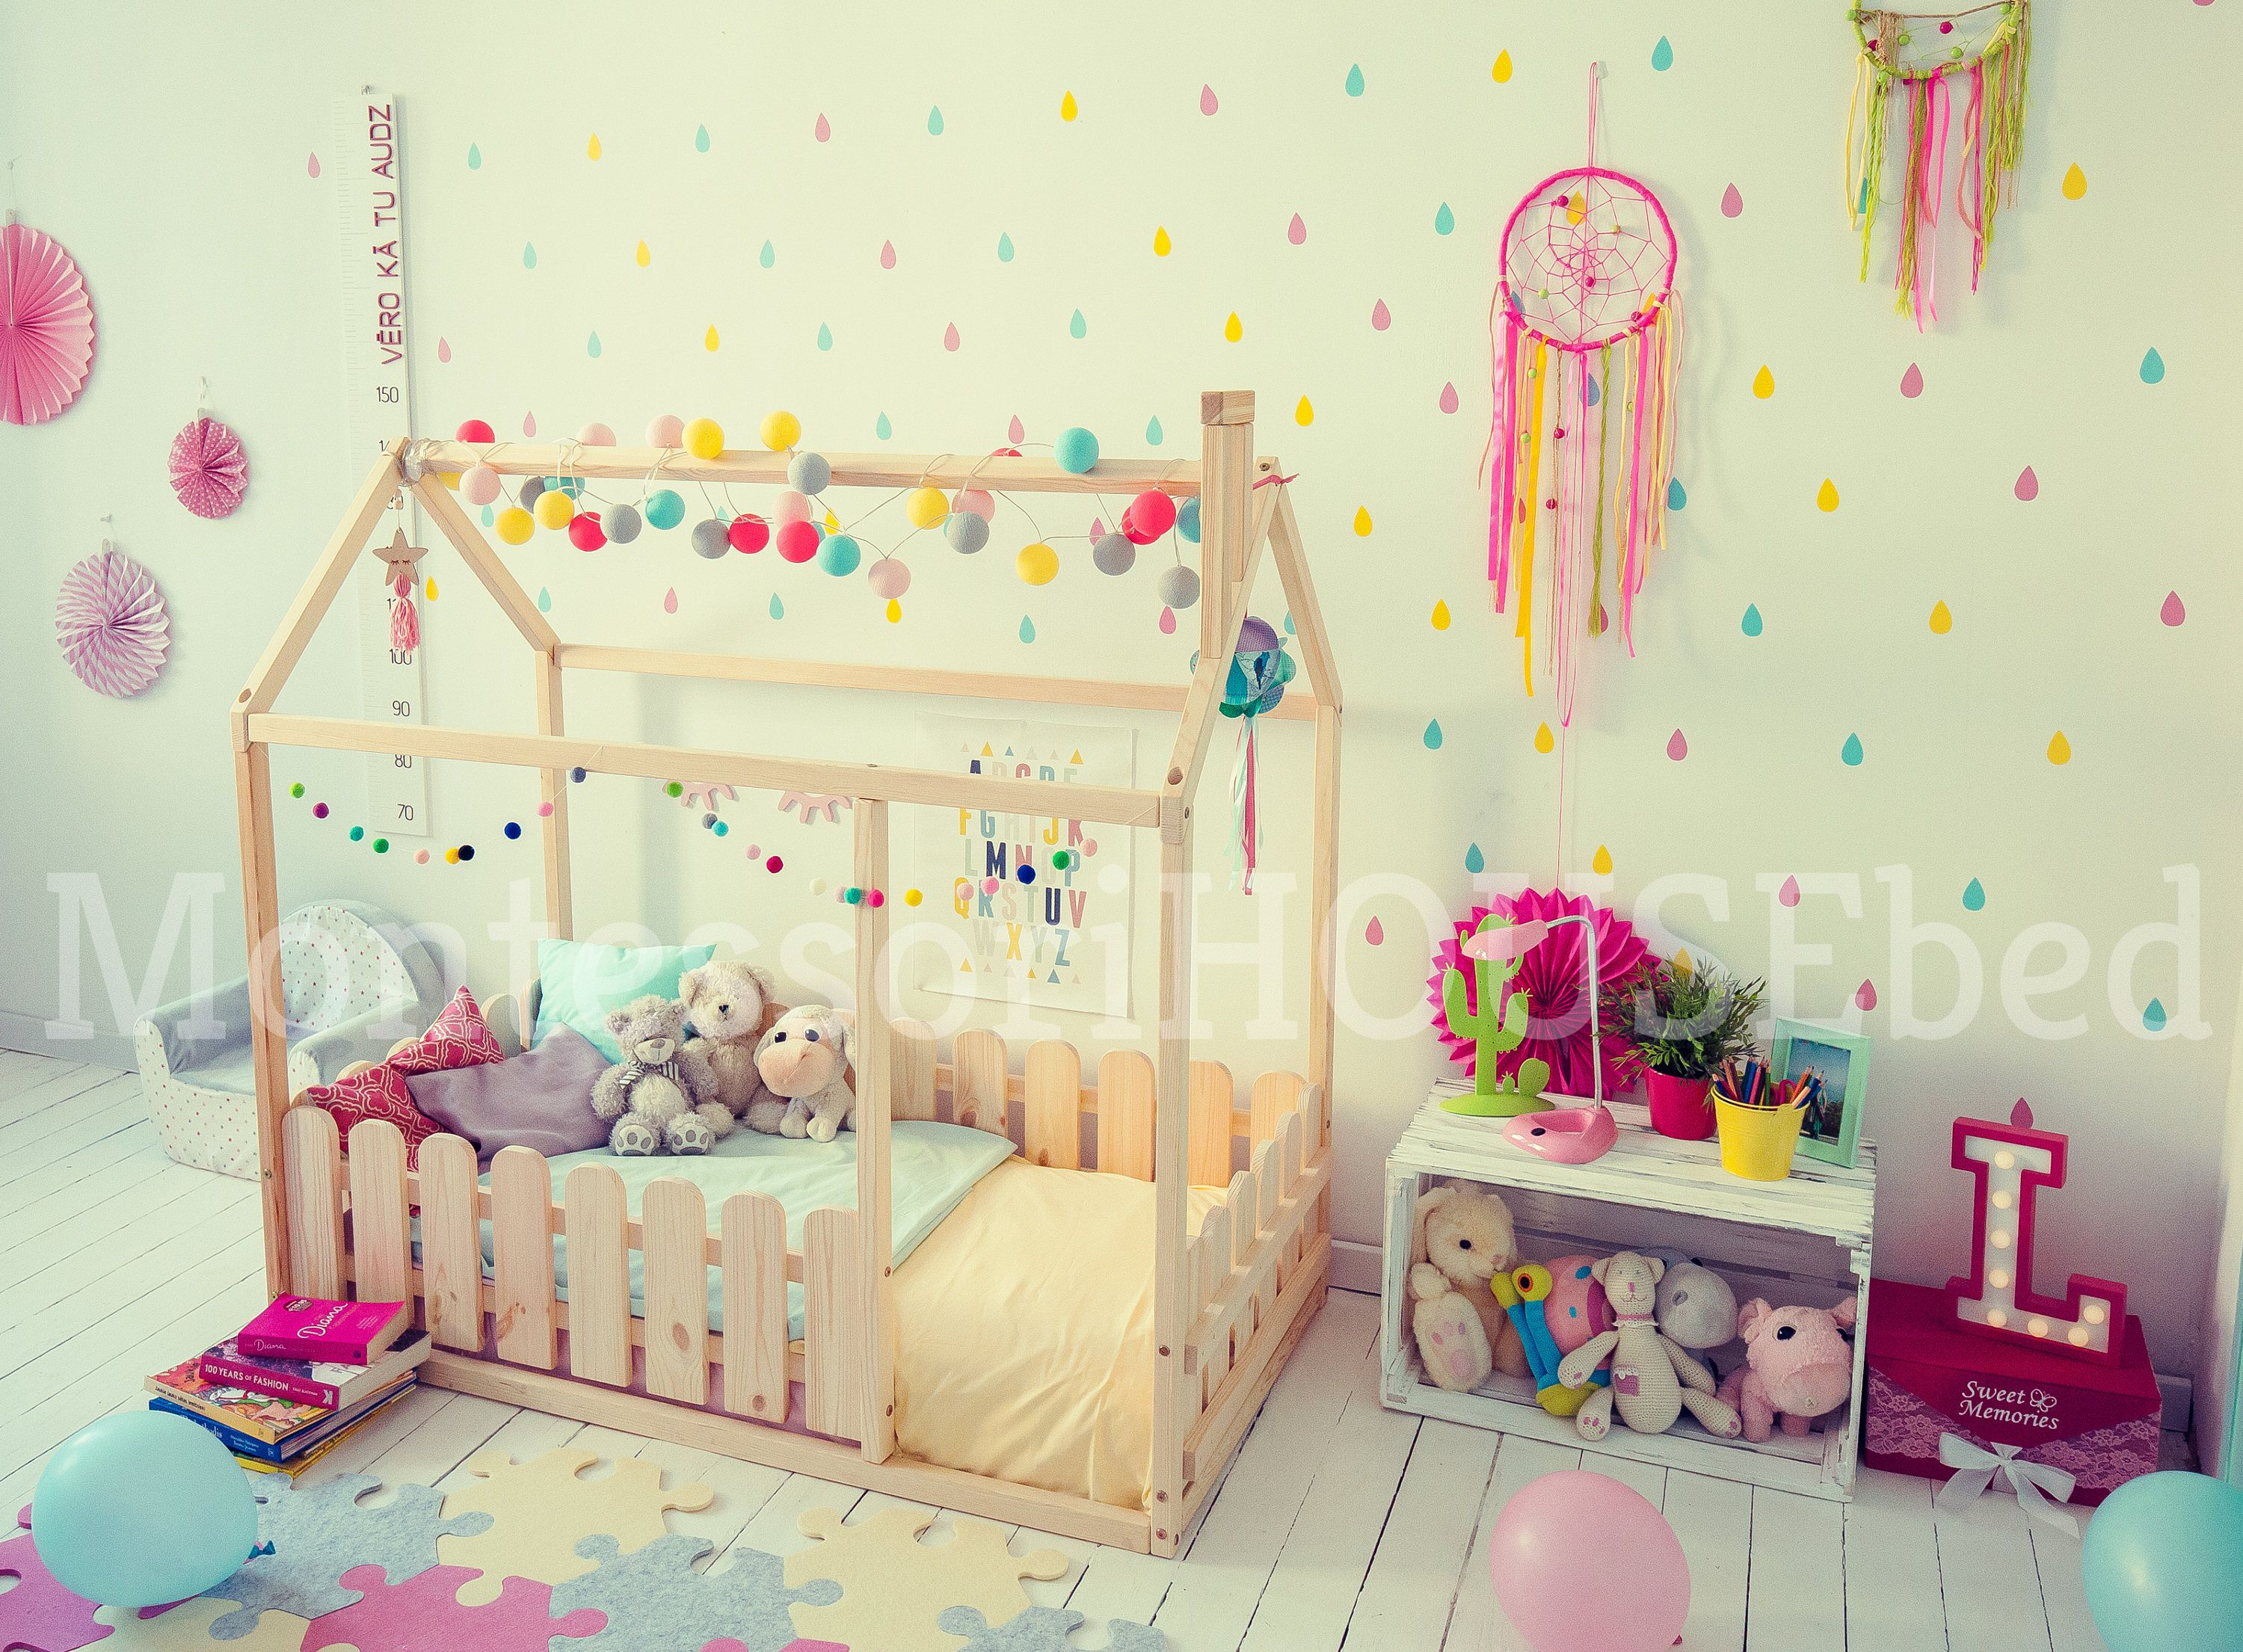 floors design excellent marvelous truck flooredroom cute decor bed edging floor room bedroom ideas category with post delightful wooden awesome